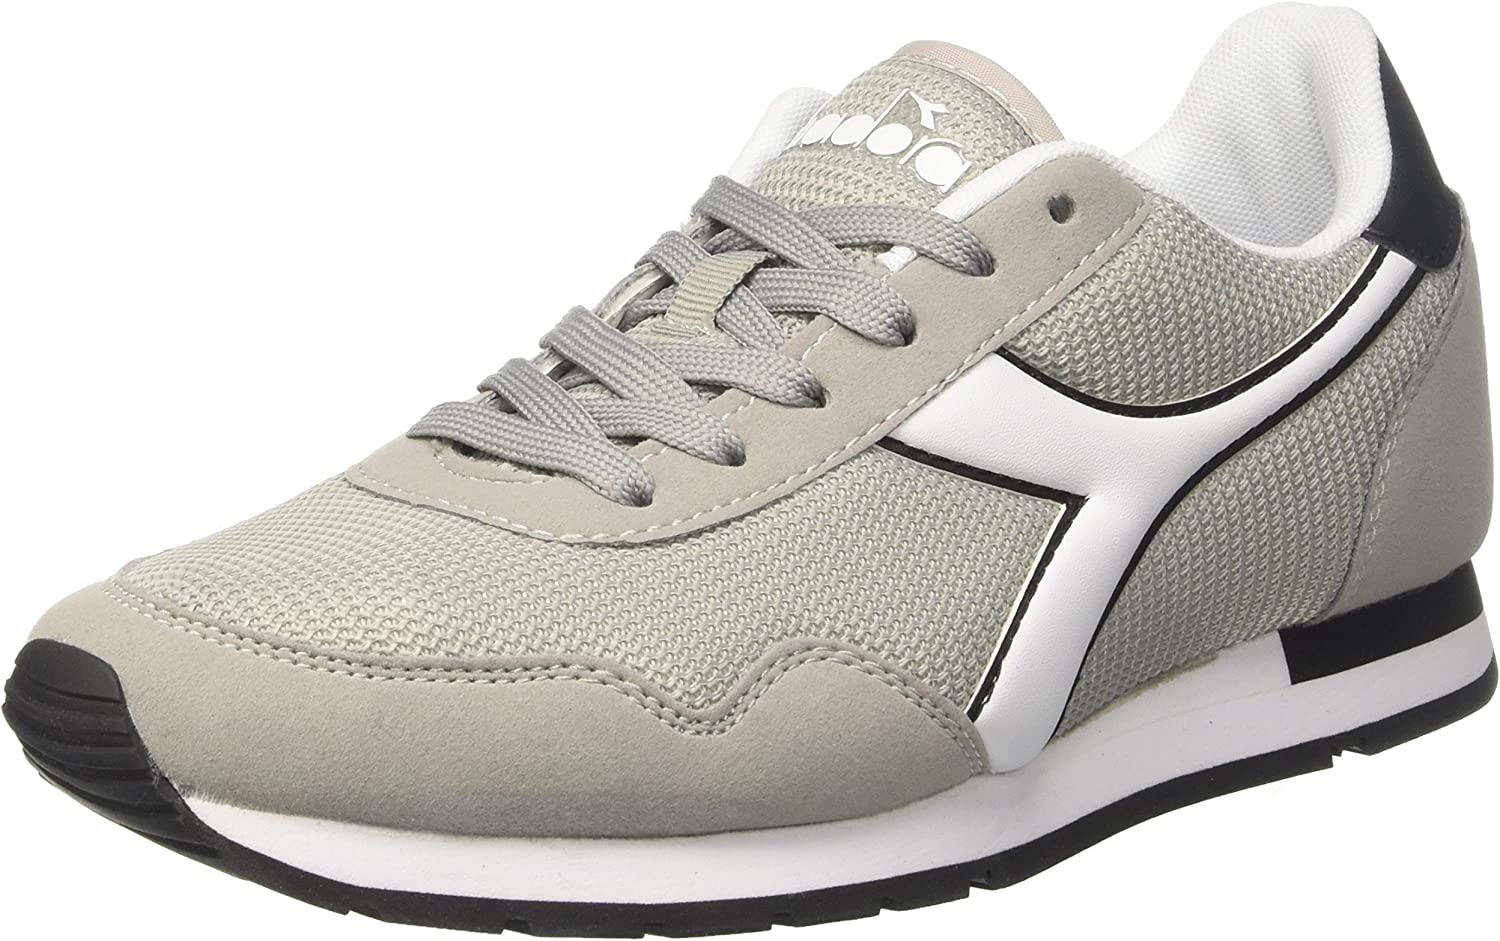 Diadora Men's Breeze Gymnastics shoes